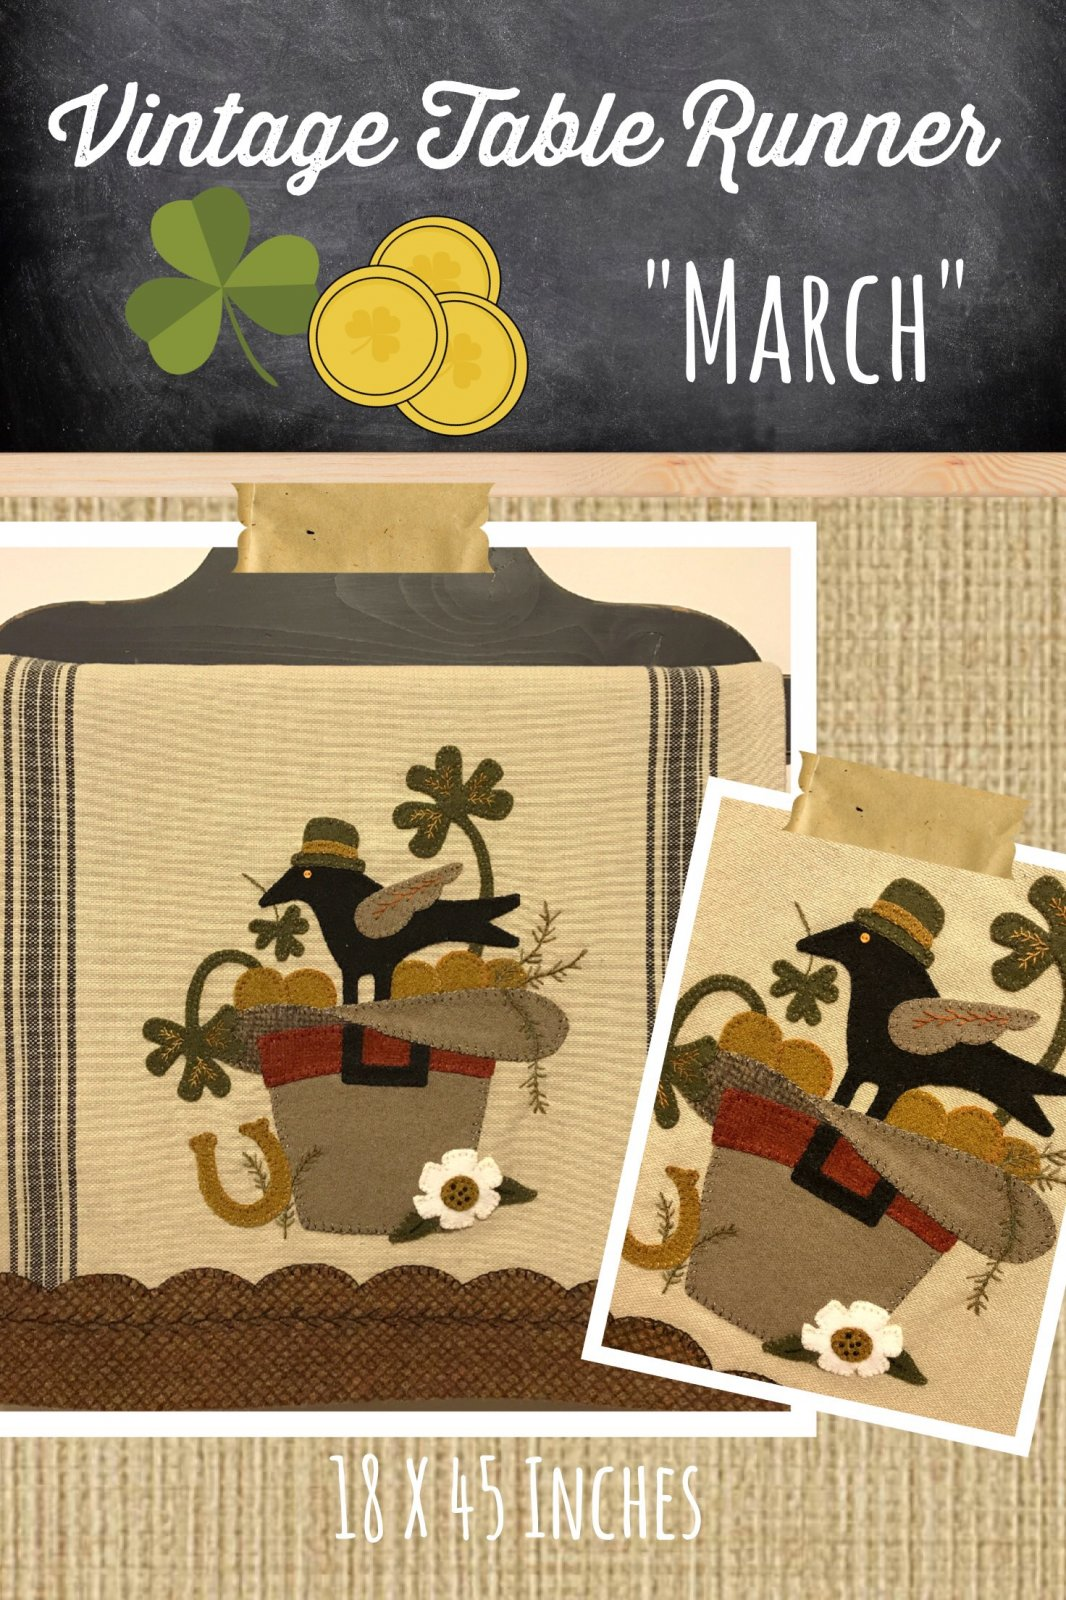 Vintage Table Runner thru the Year March Pattern